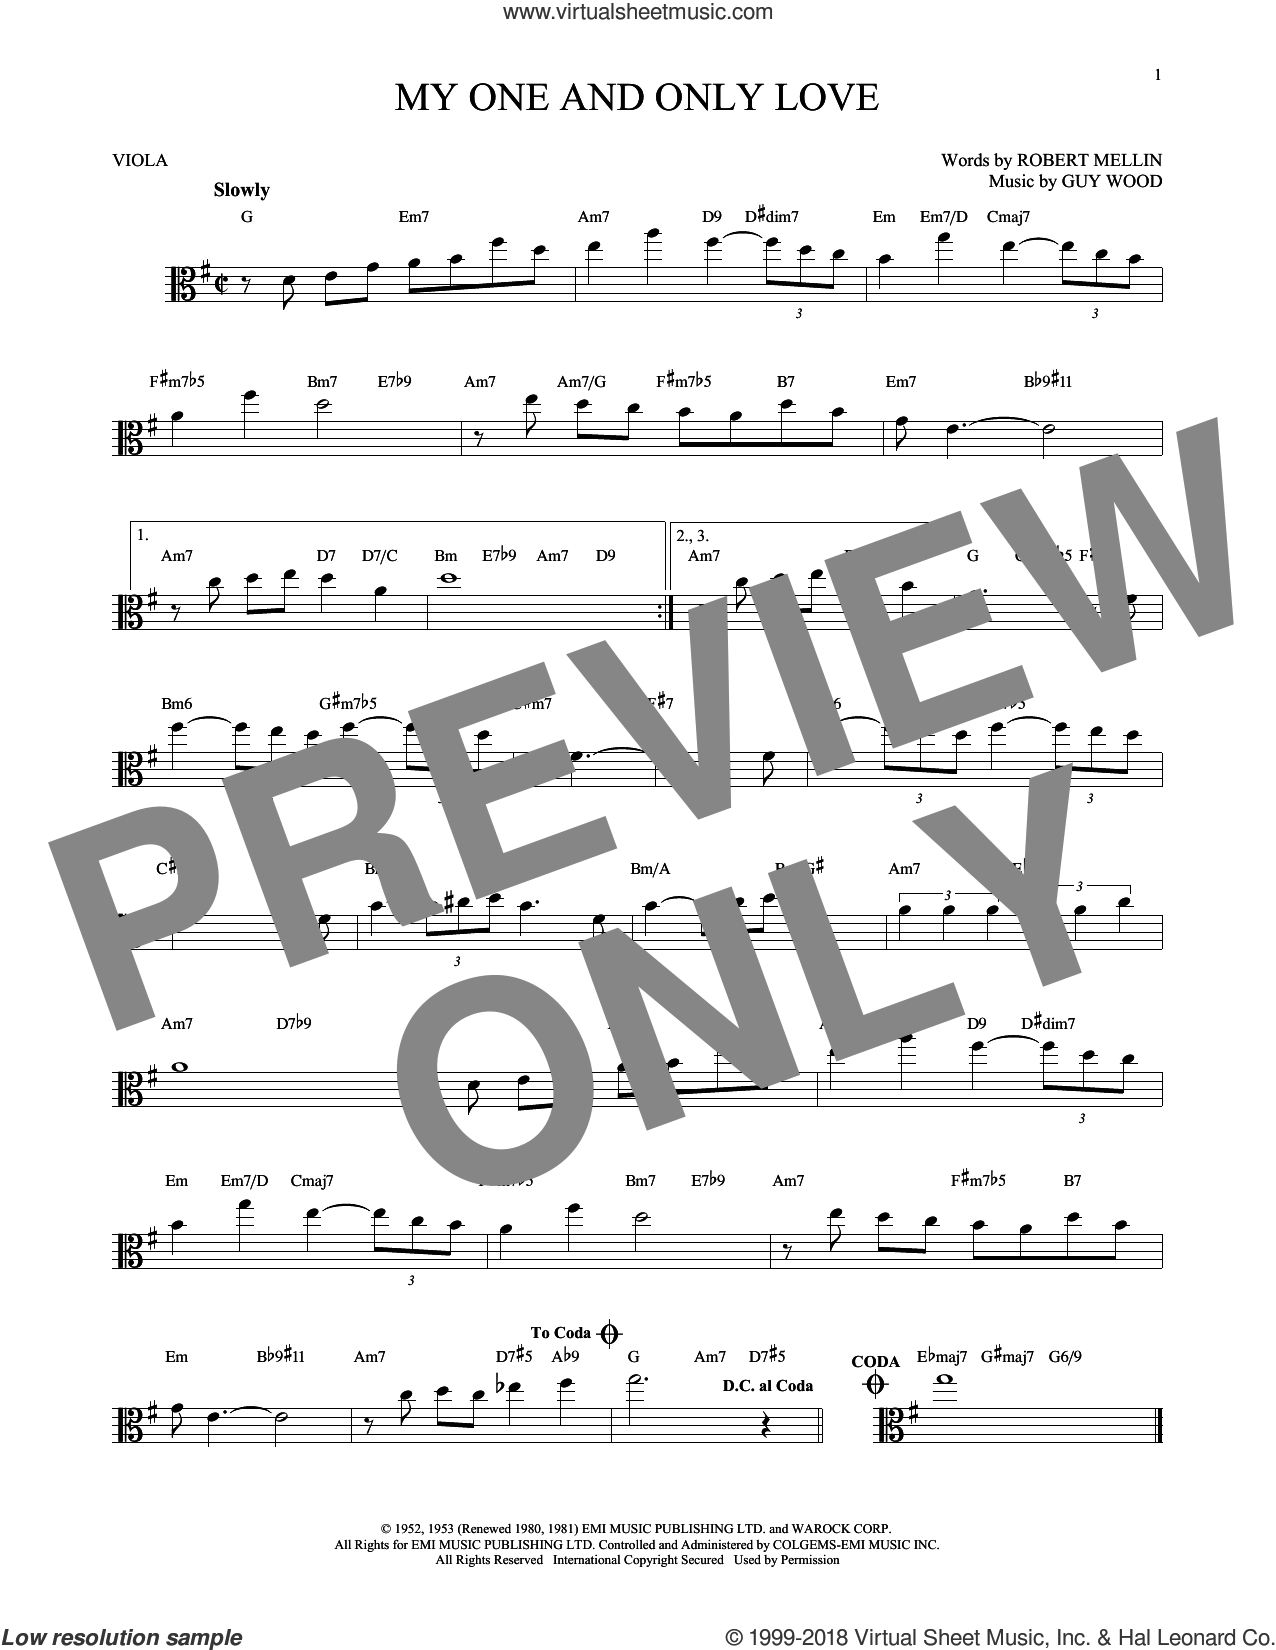 My One And Only Love sheet music for viola solo by Guy Wood and Robert Mellin, intermediate skill level